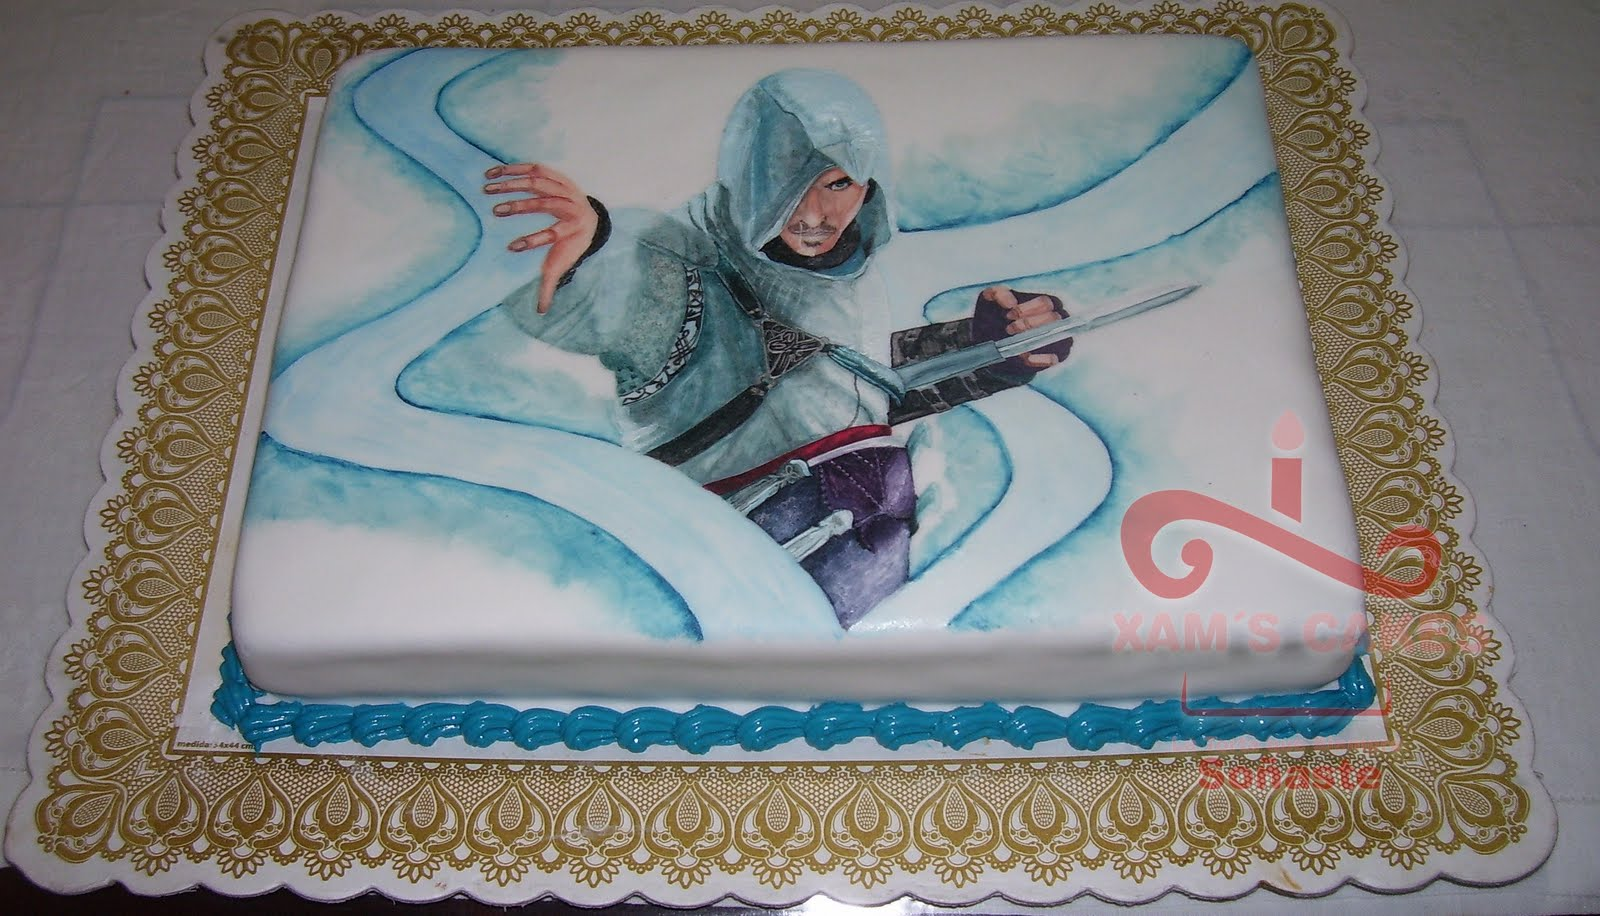 Cake Design Assassin S Creed : Pin Assassins Creed Cake Ideas And Designs Picture on ...